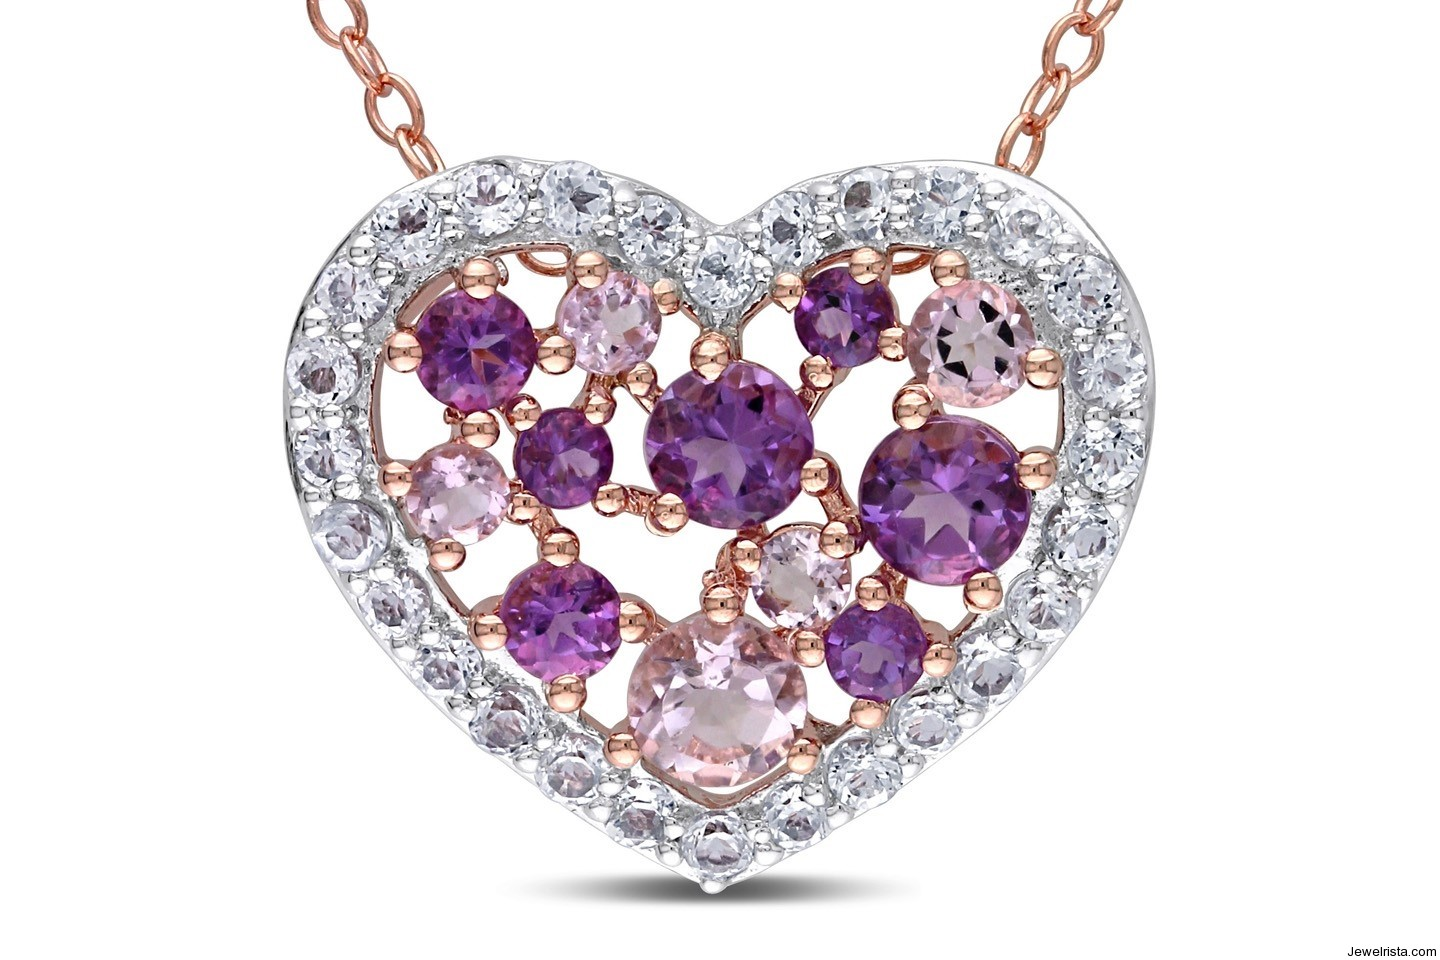 Choose the Perfect Gift for your Girlfriend – Heart Necklace